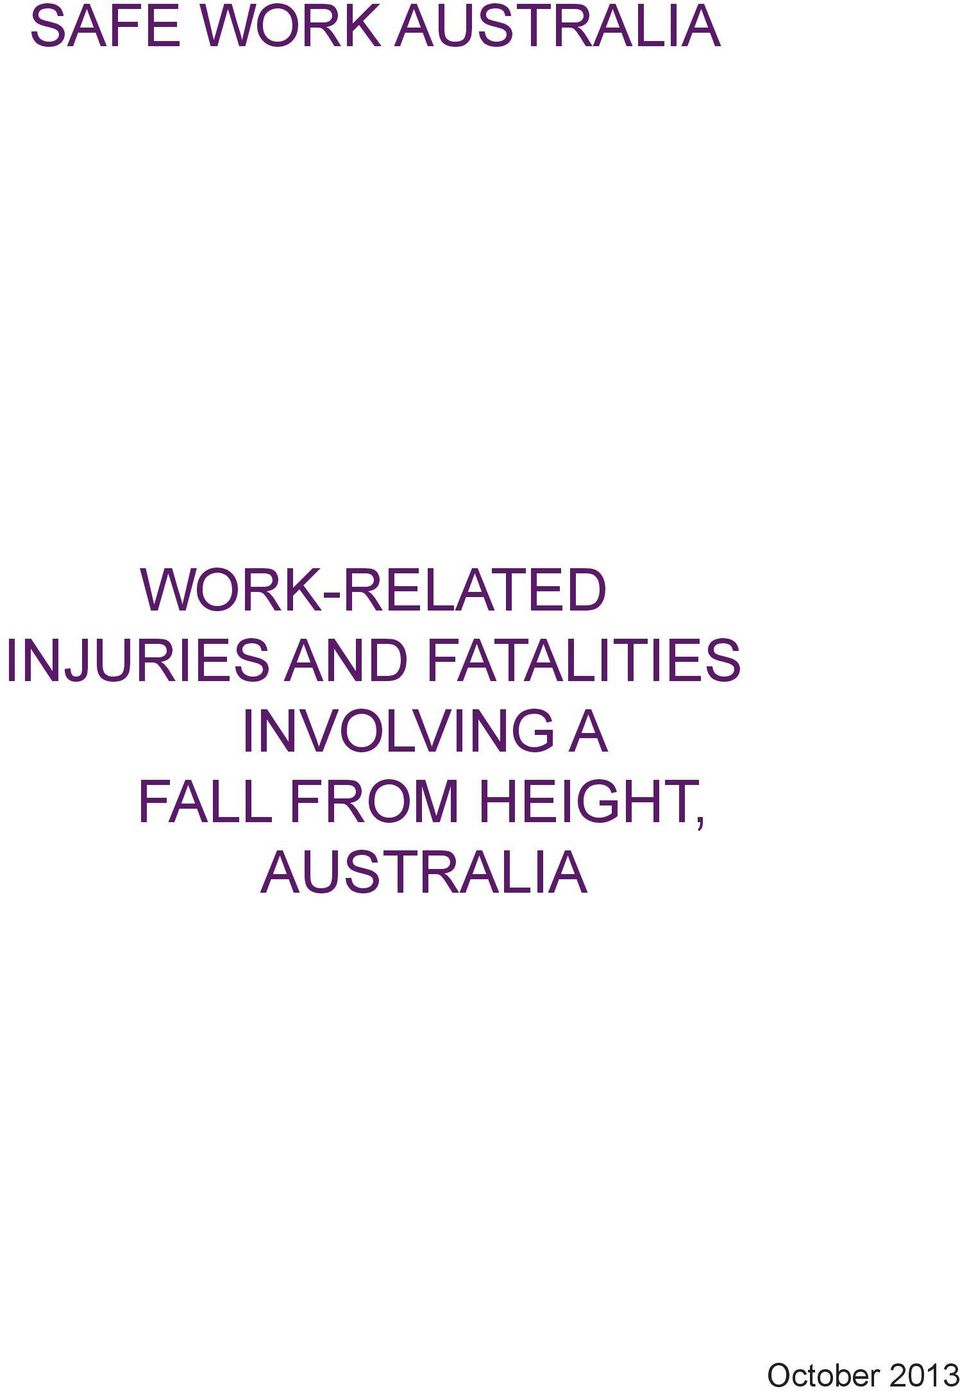 FATALITIES INVOLVING A FALL